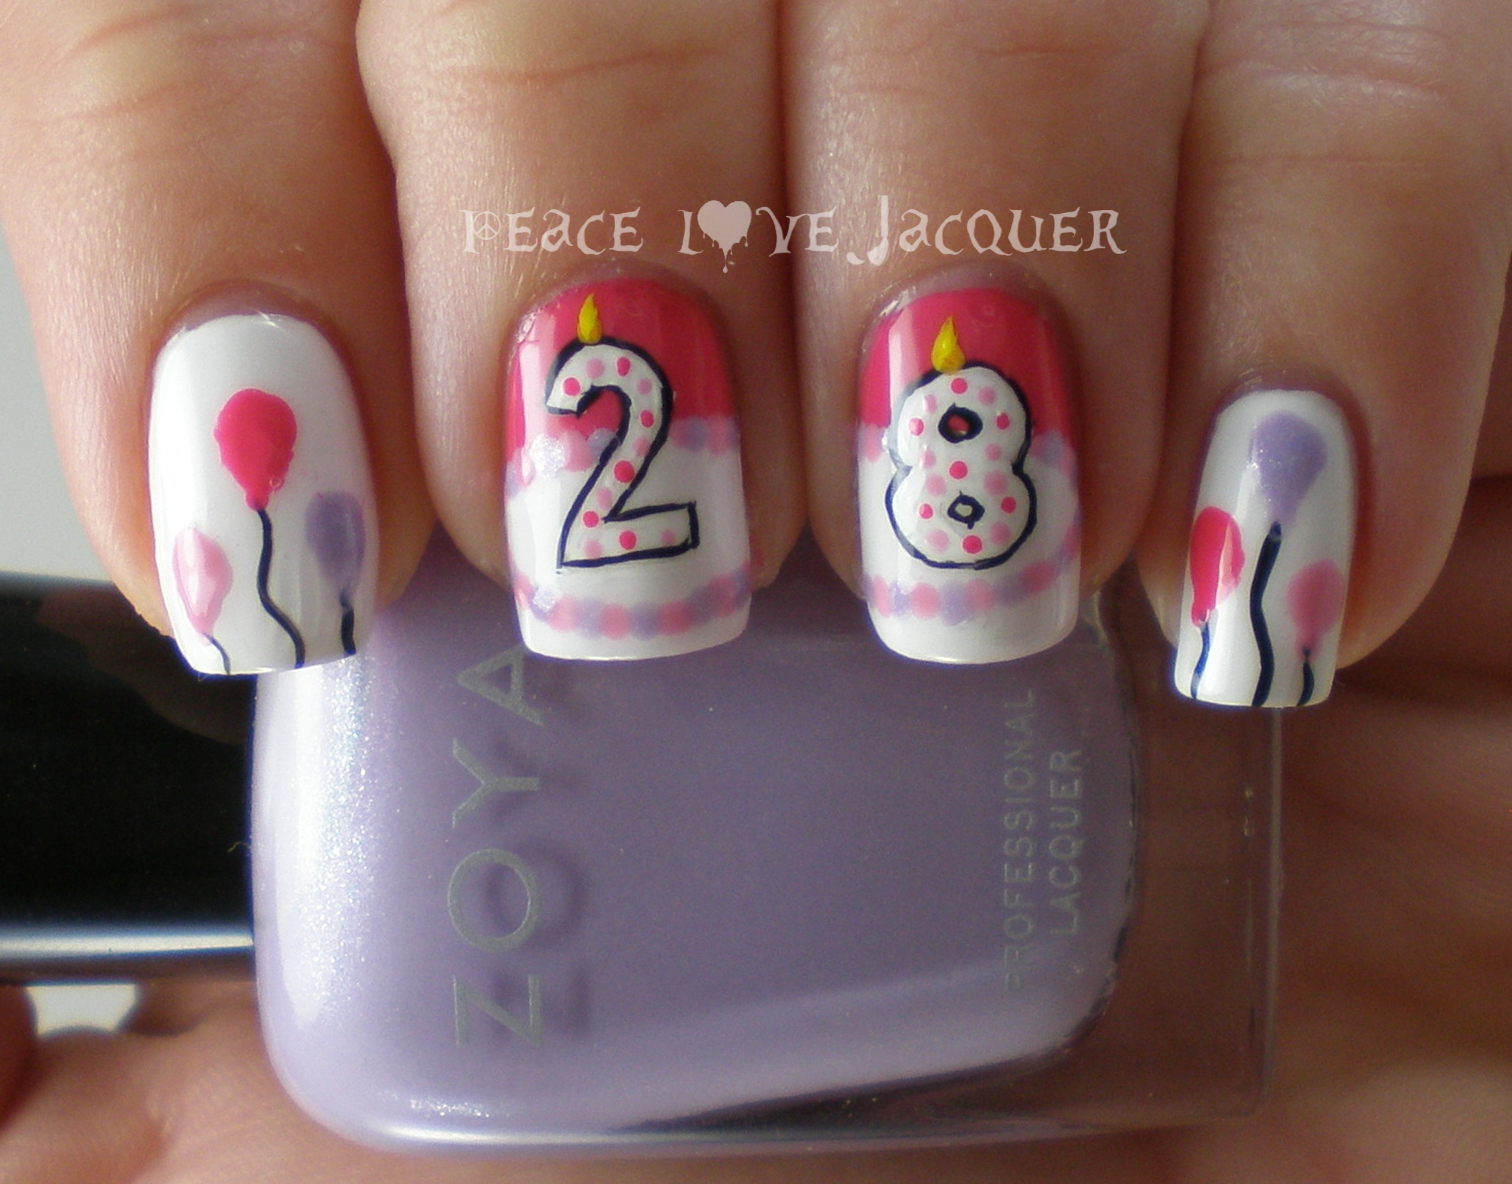 Peace Love Lacquer Happy Birthday to Me Nail Art Flash Giveaway